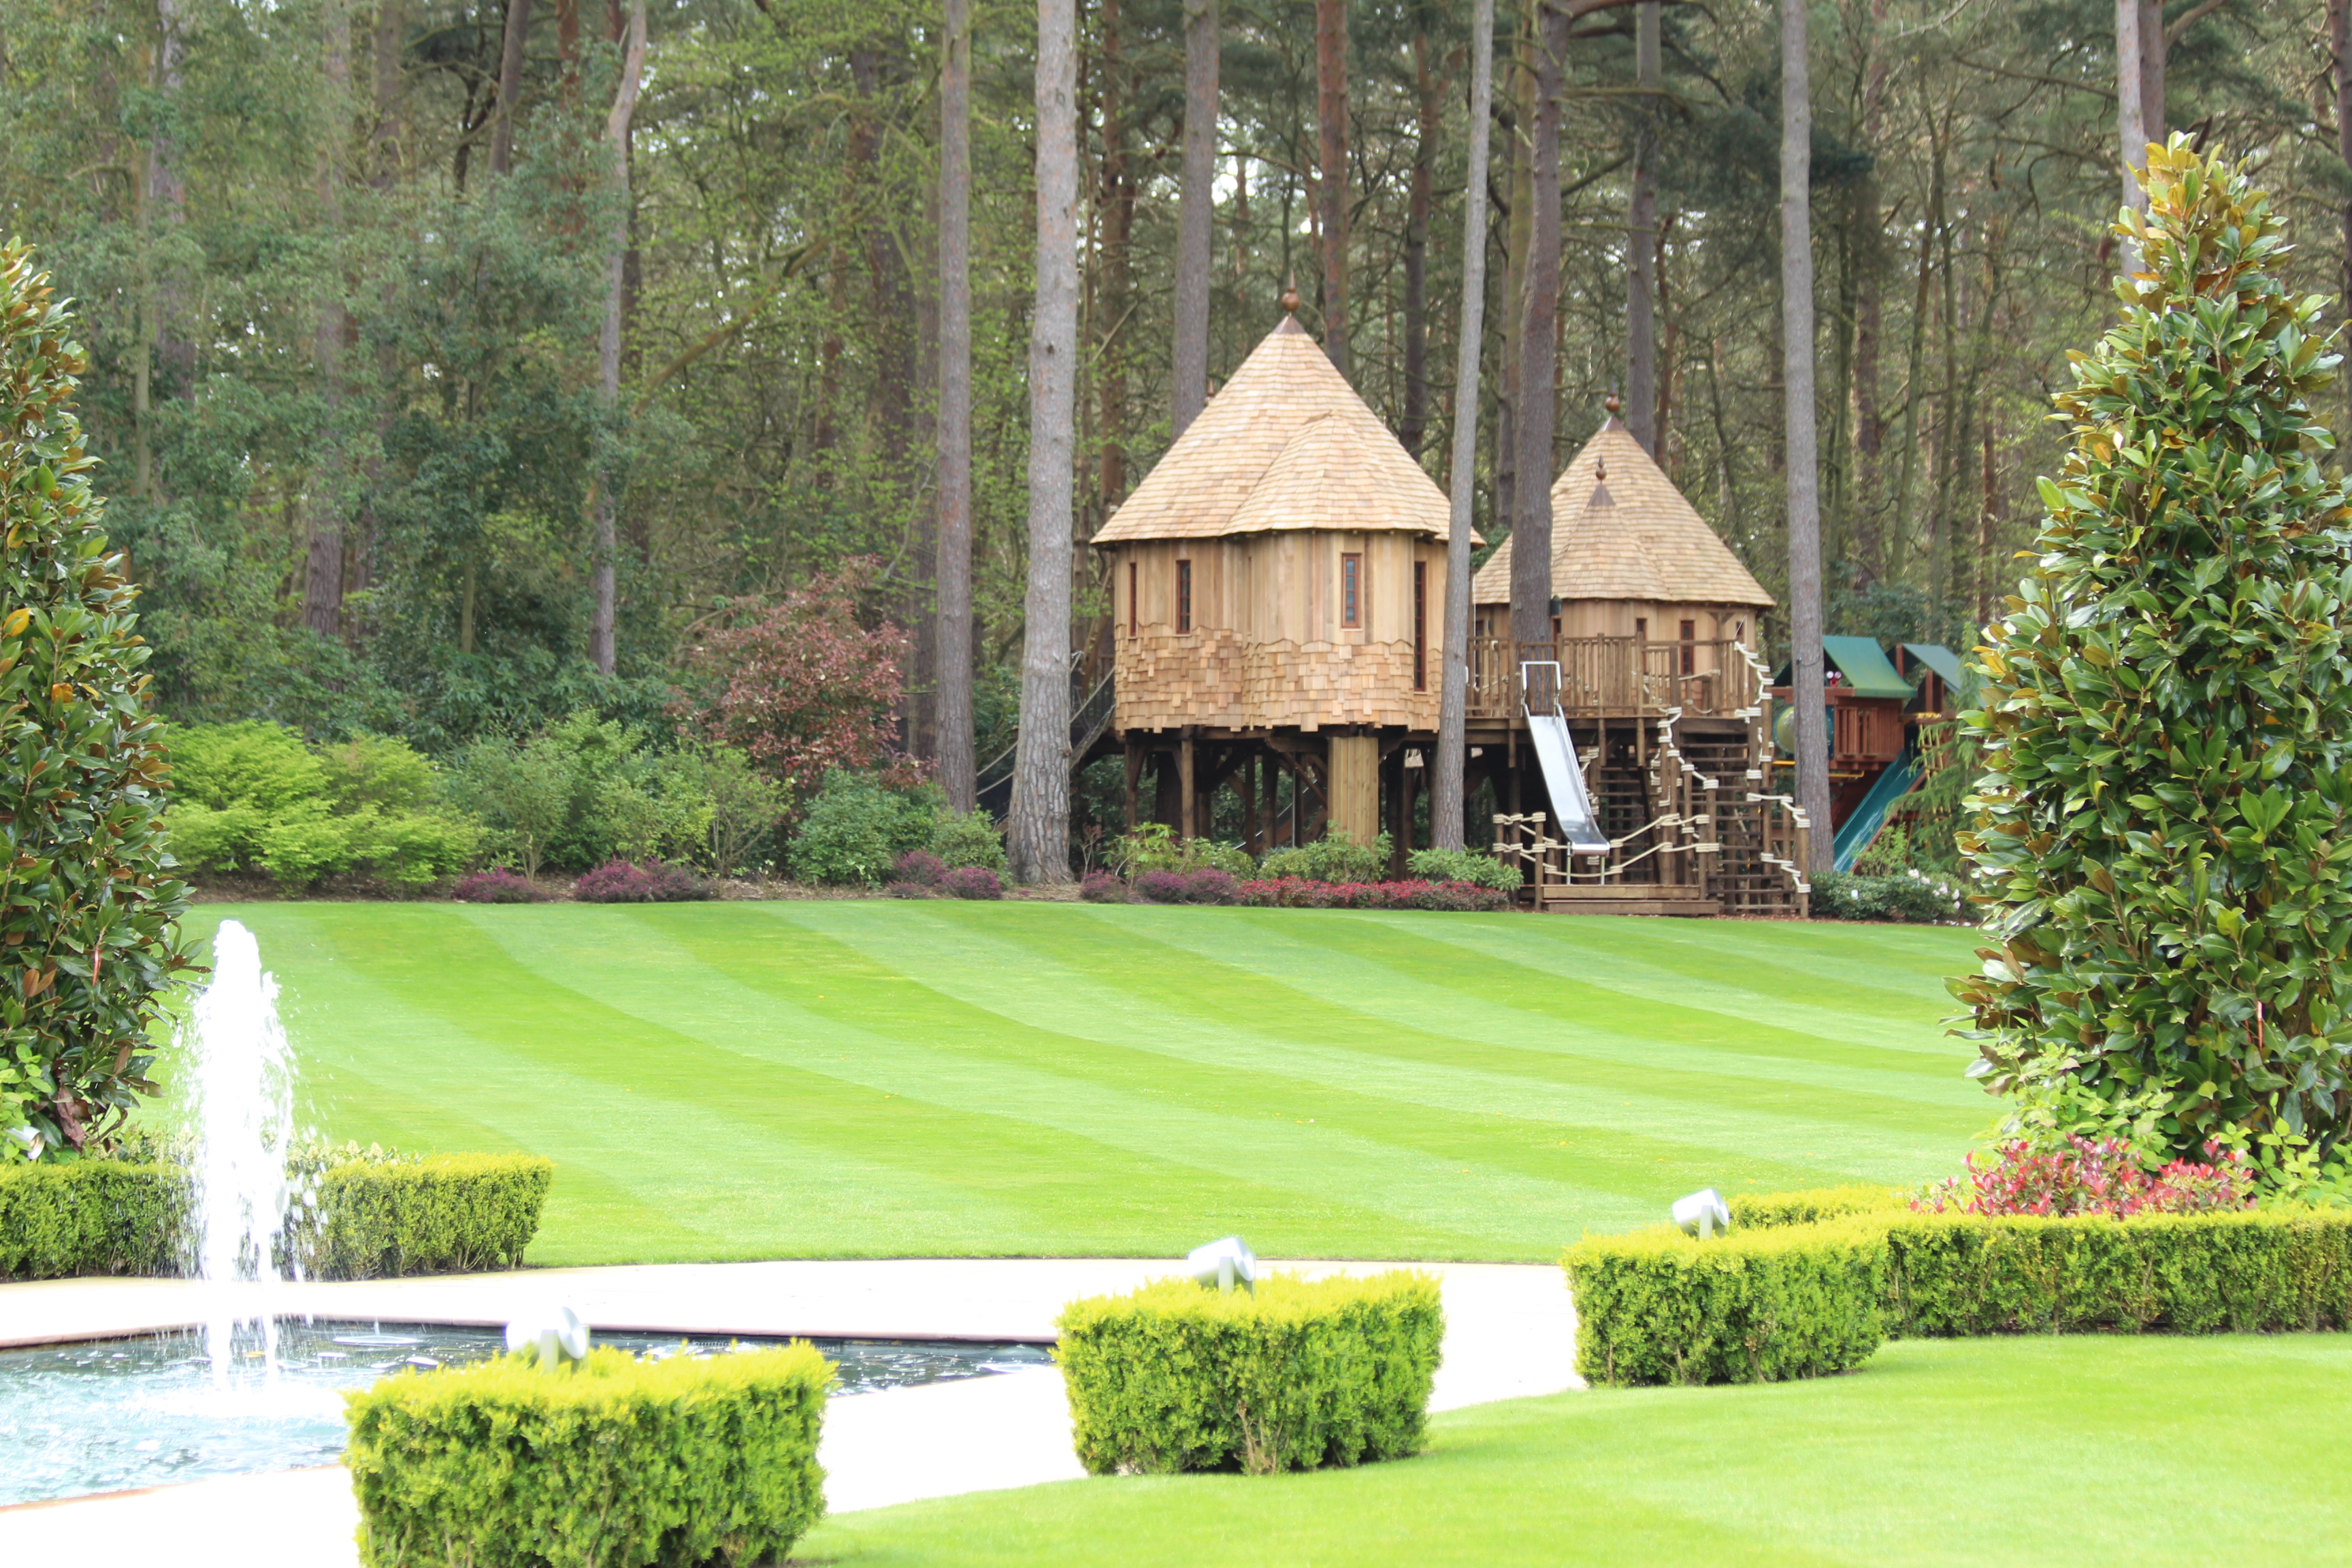 A view of the treehouses and adventure area from across the lawn. The treehouses are tucked neatly into the edge of the trees.